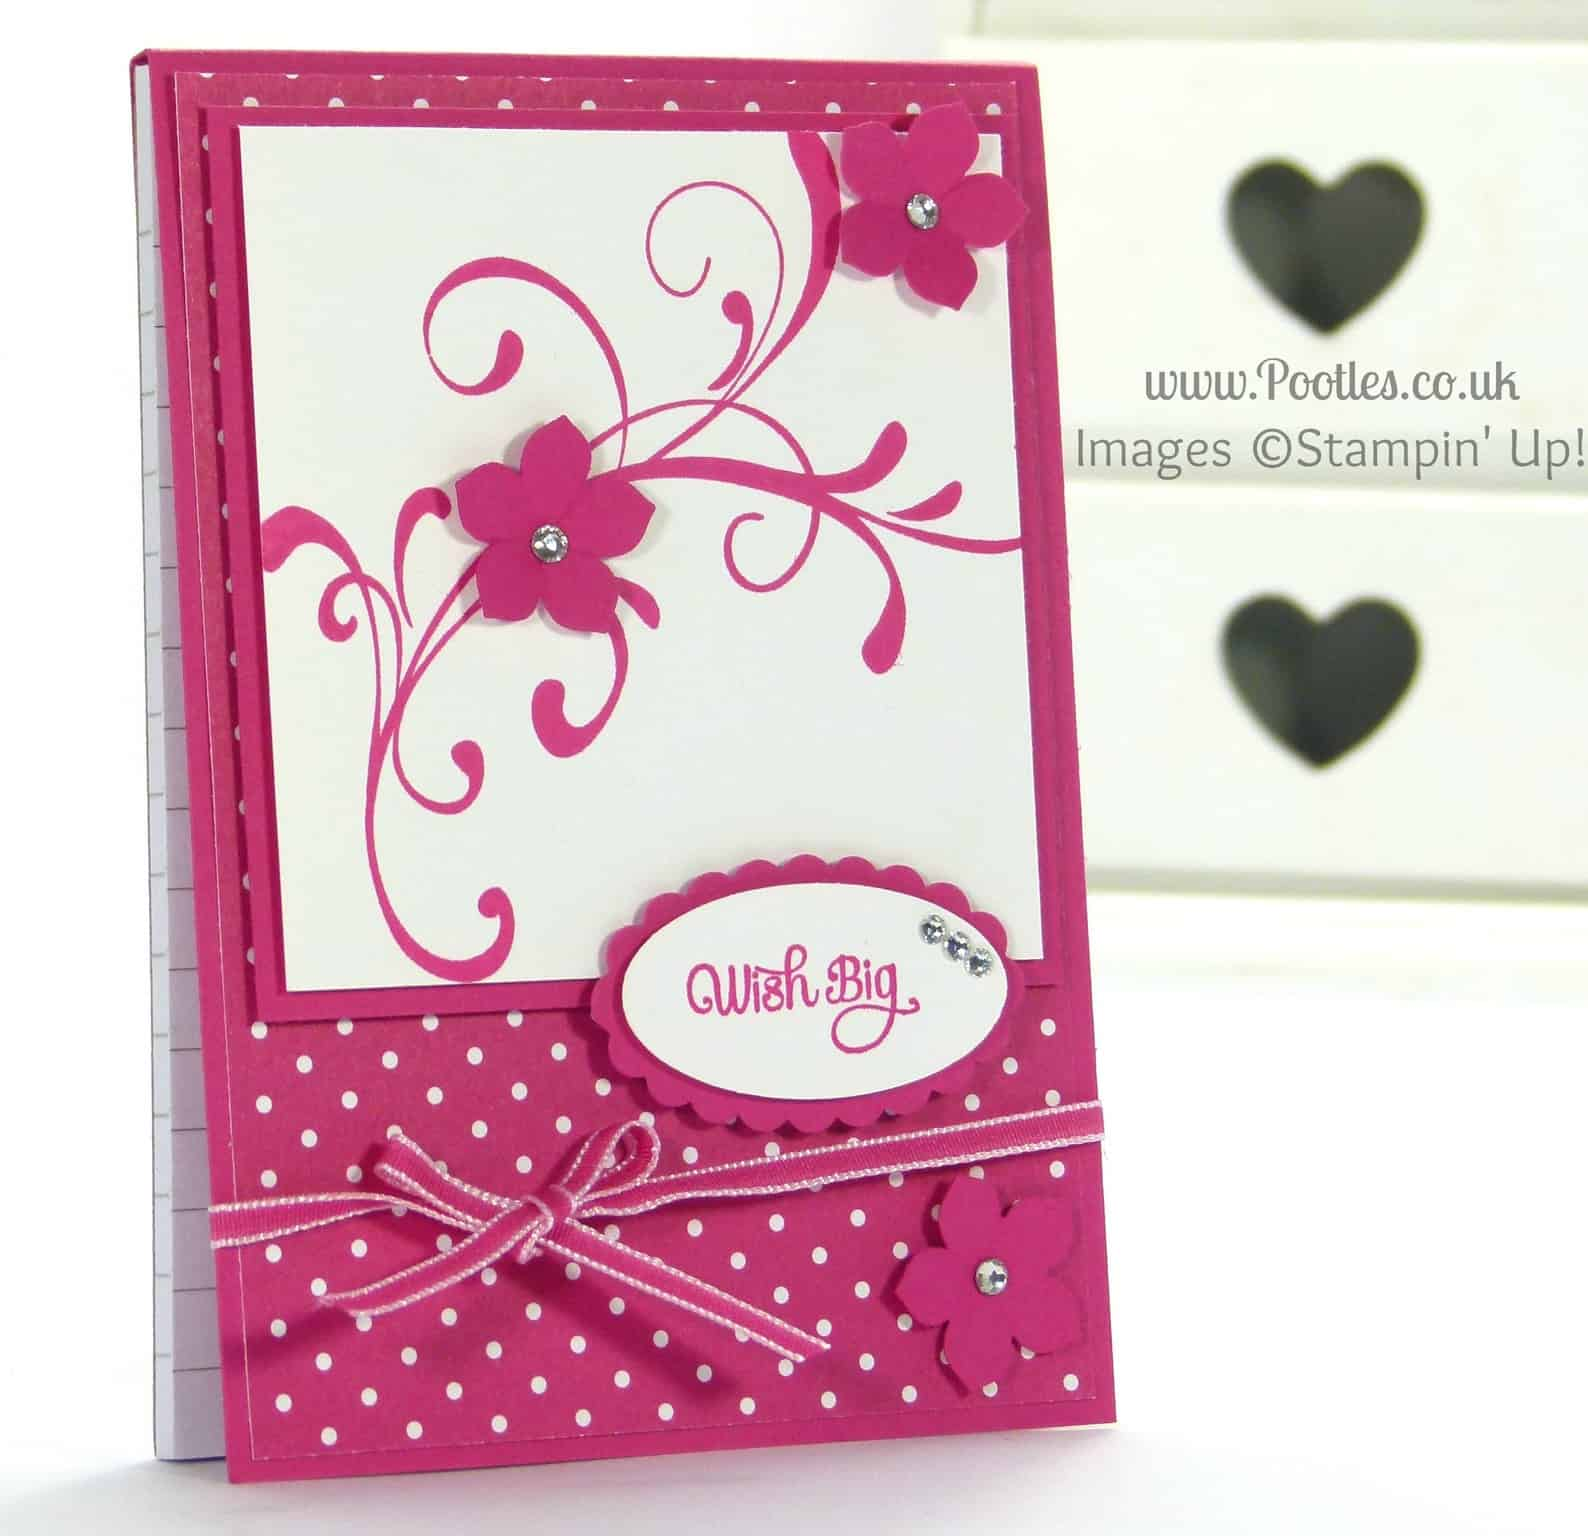 Stampin' Up! UK Demonstrator Pootles - How to Measure and Layer to Cover a Notebook Tutorial